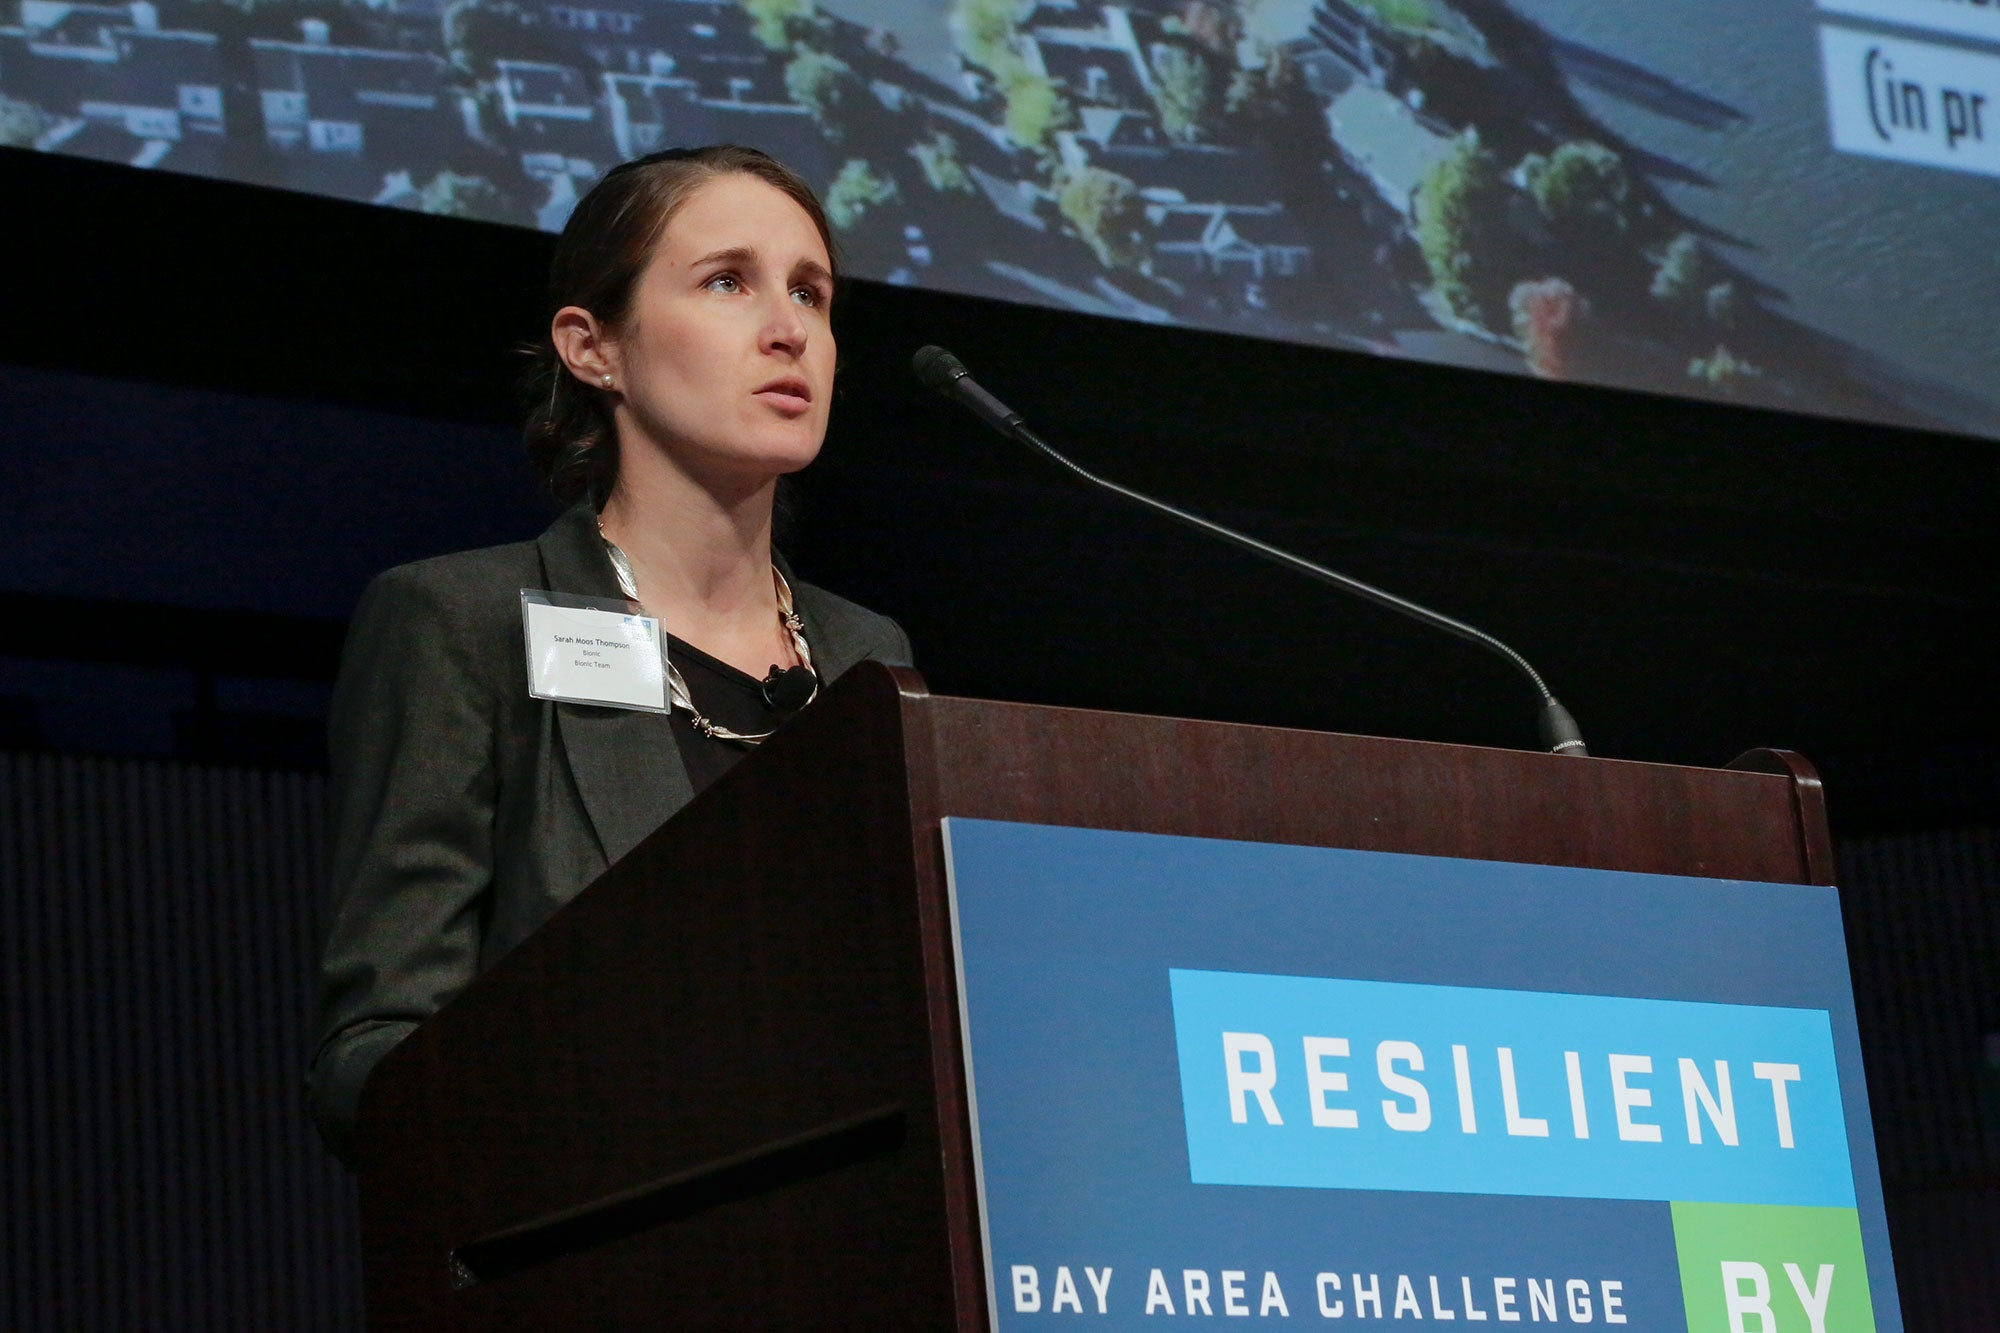 Resilient by Design | Bay Area Challenge | SF Jazz Center Presentations